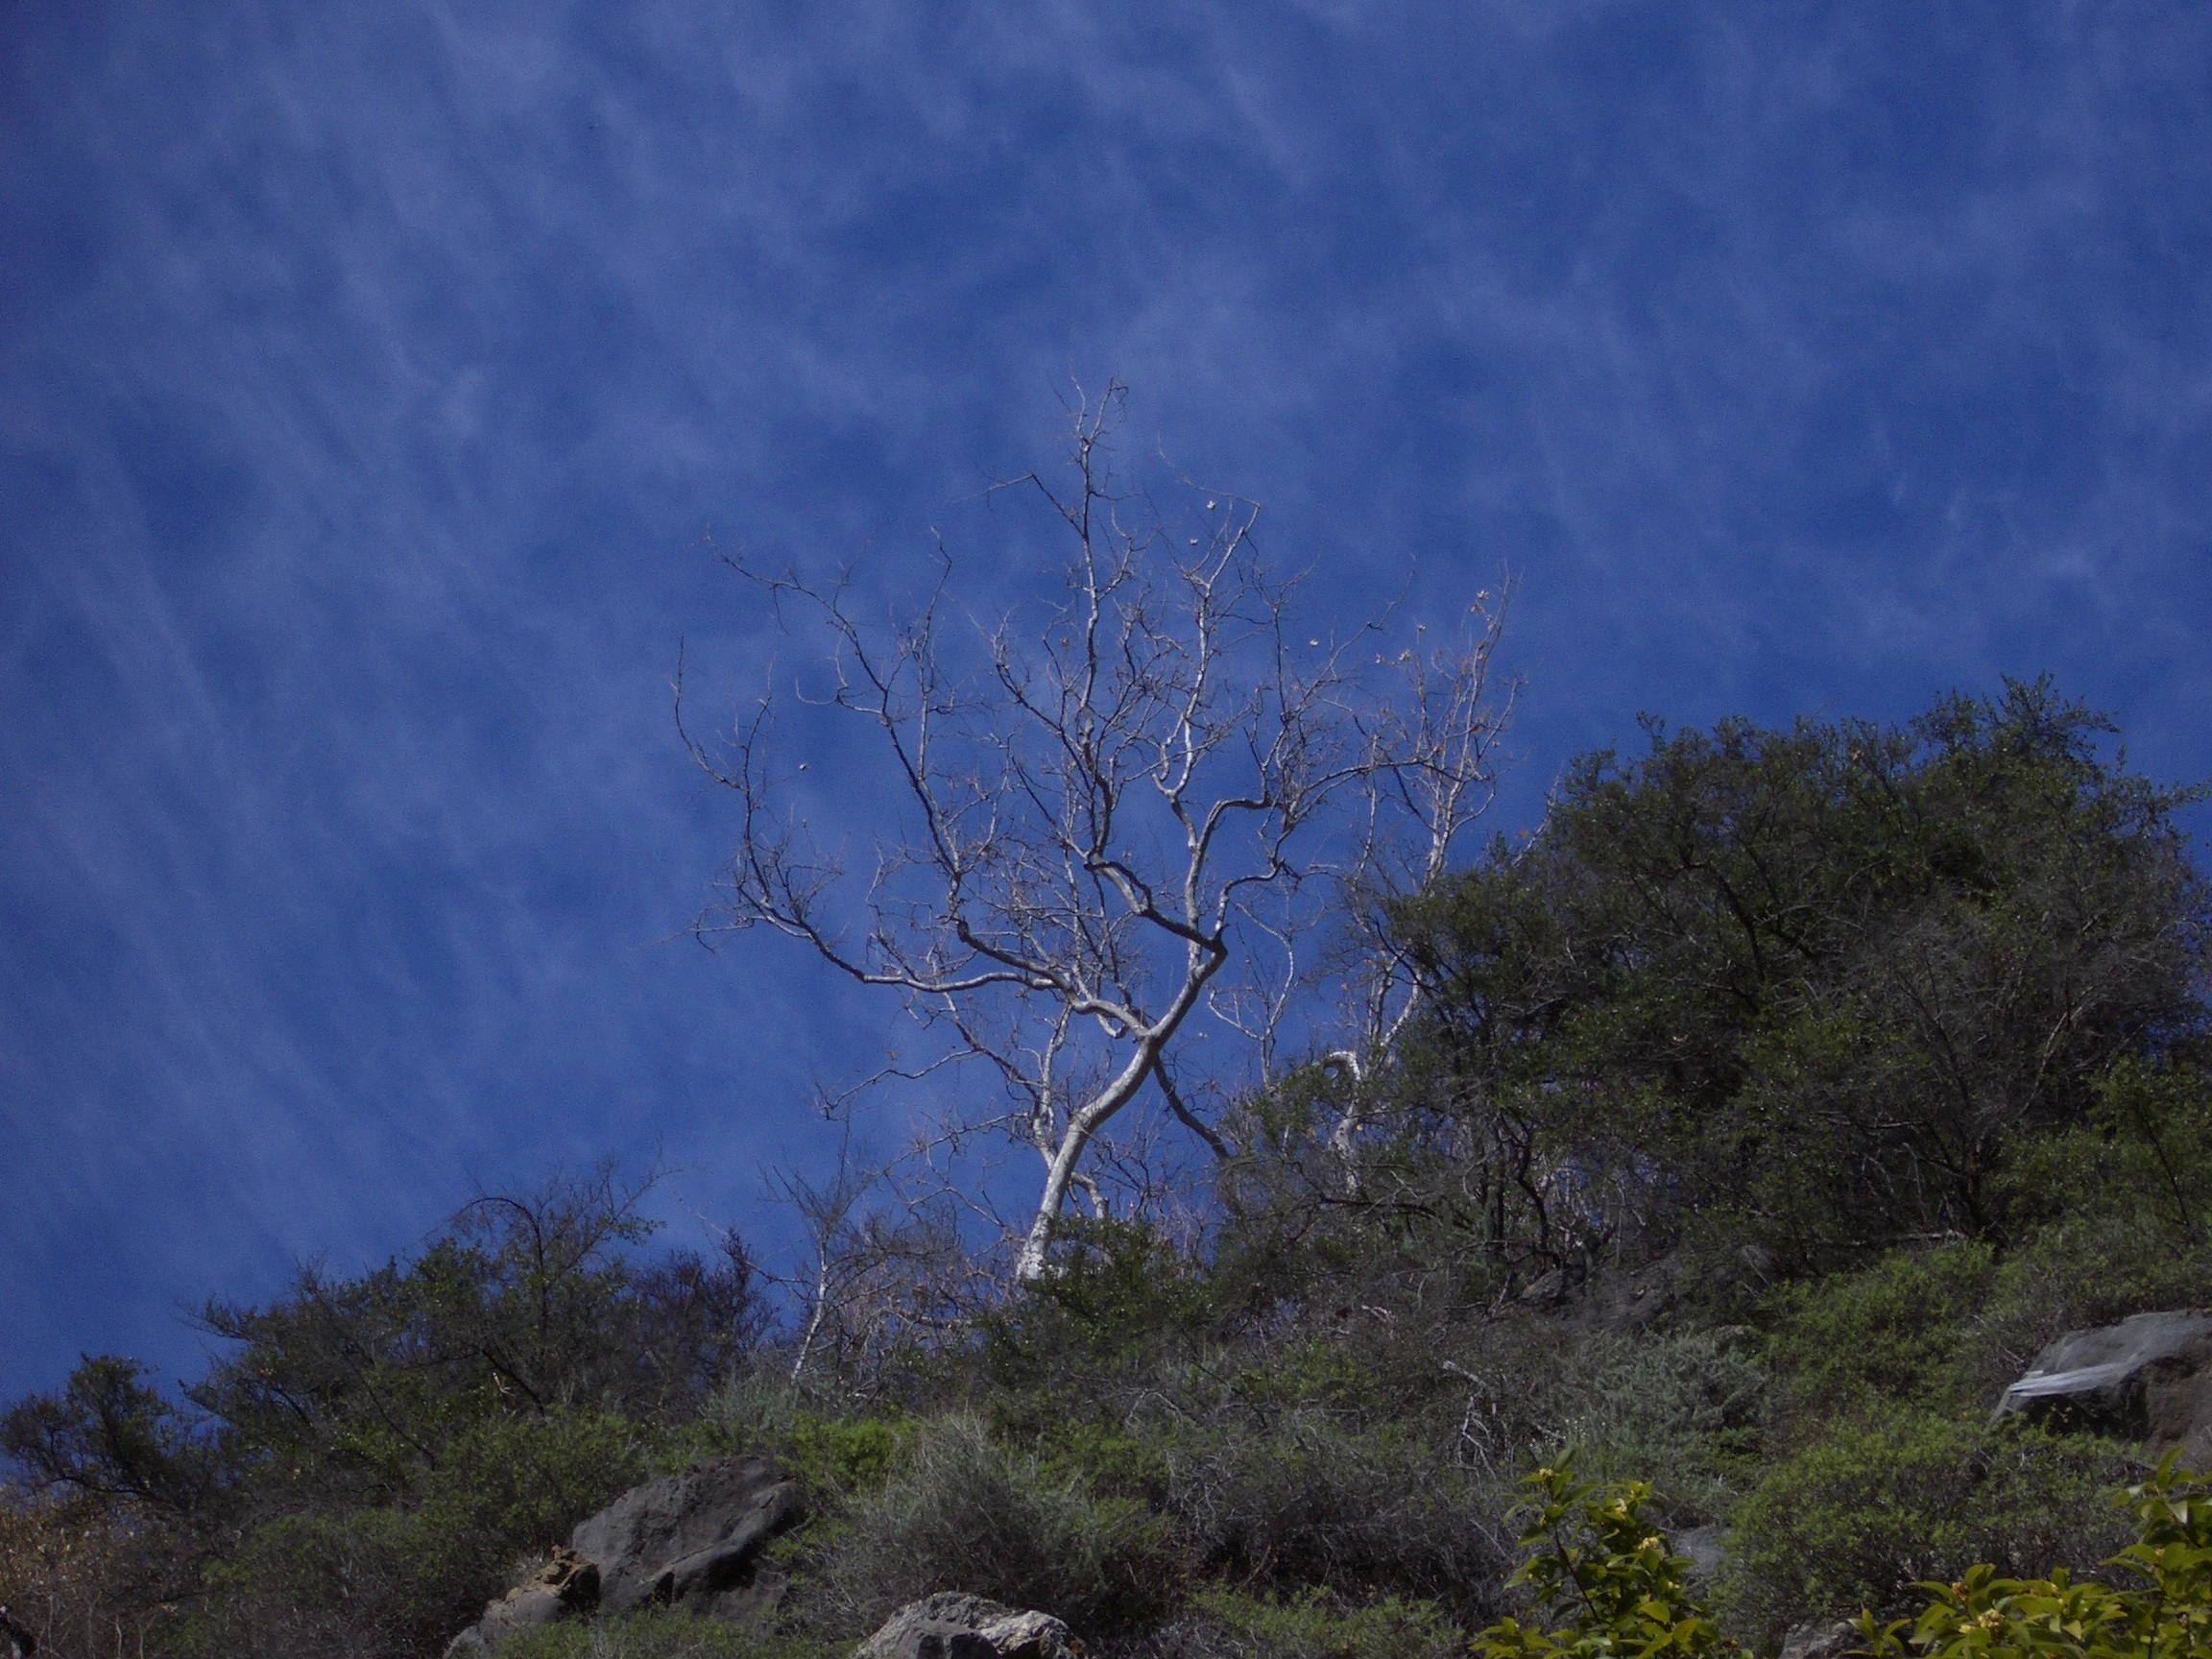 White Dead Tree Against Blue Sky Stippled With Clouds